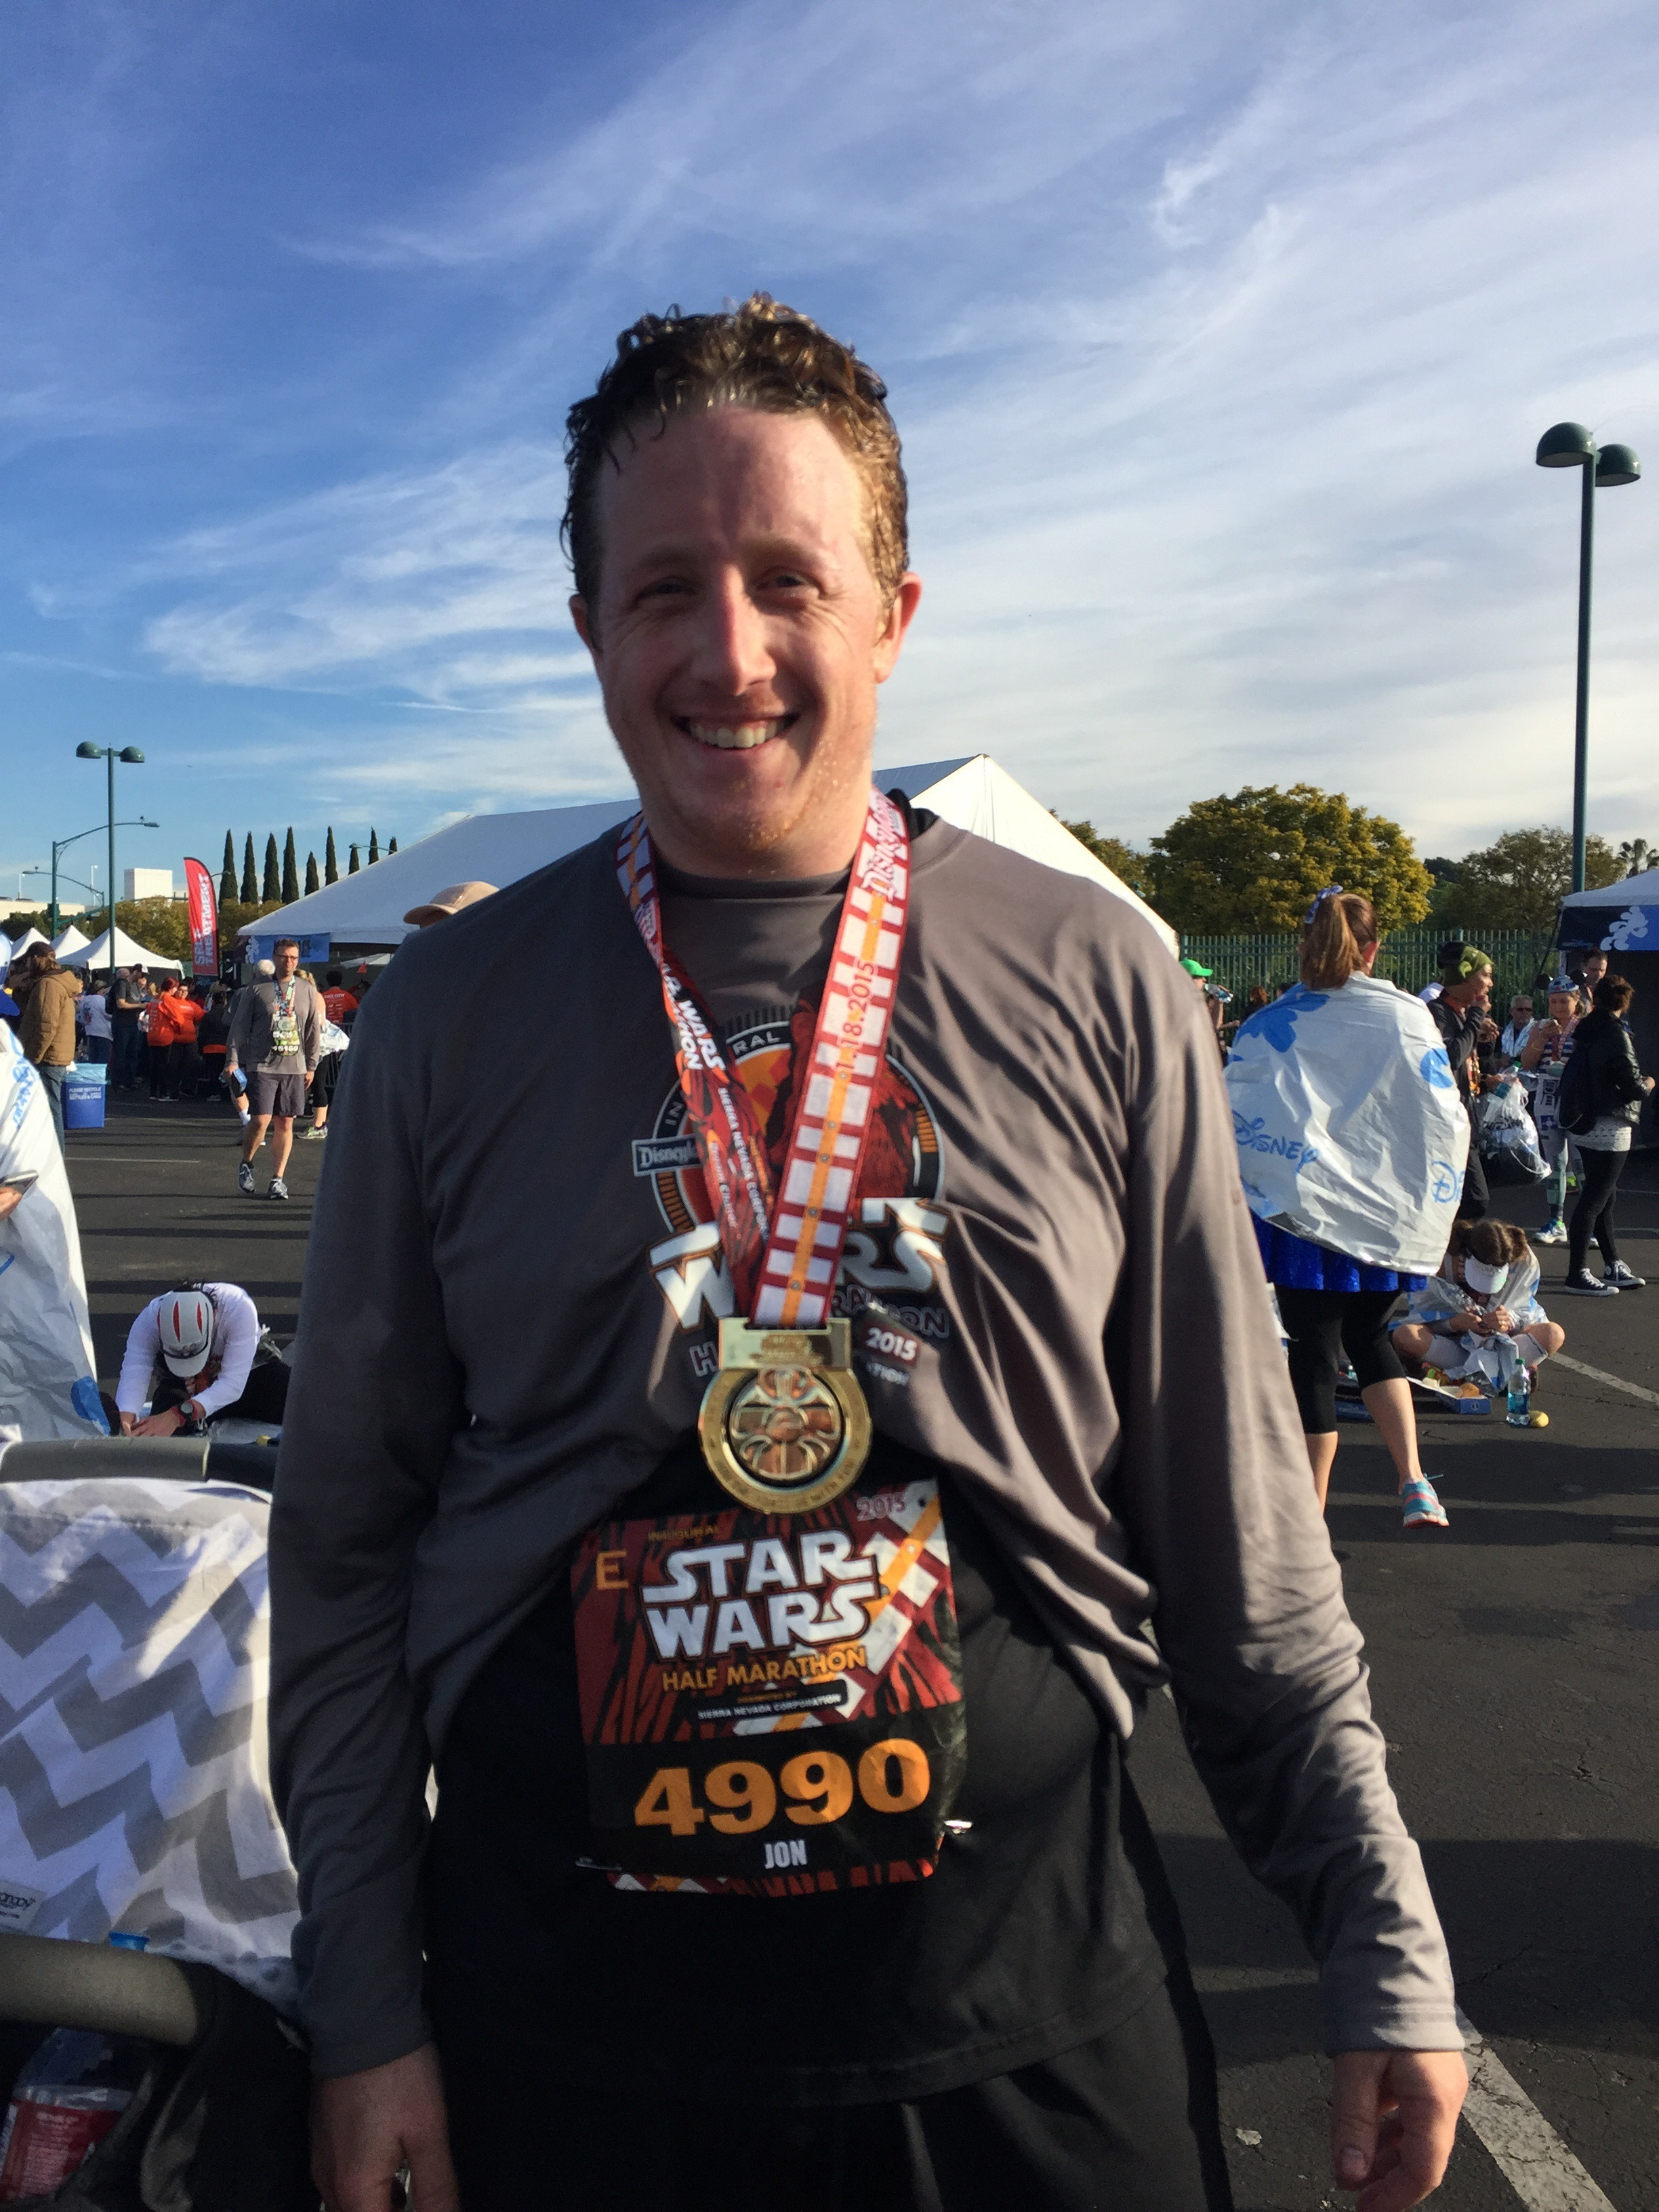 RunDisney Star Wars Half Marathon January 18, 2015